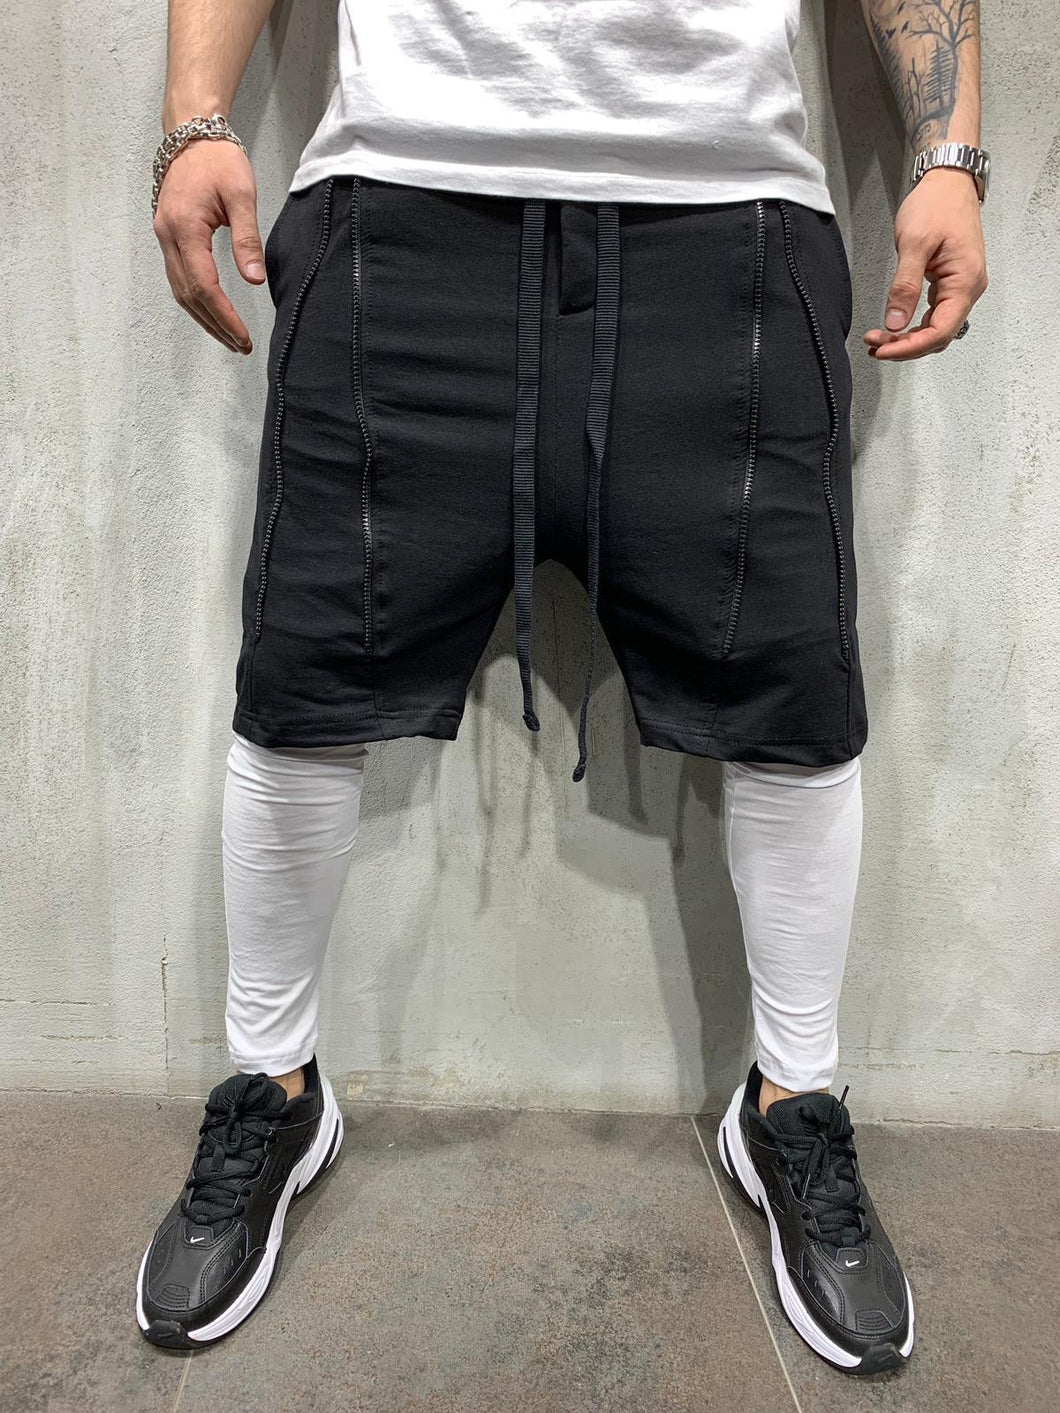 Build In Black White Joggers AY418 Streetwear Mens Jogger Pants